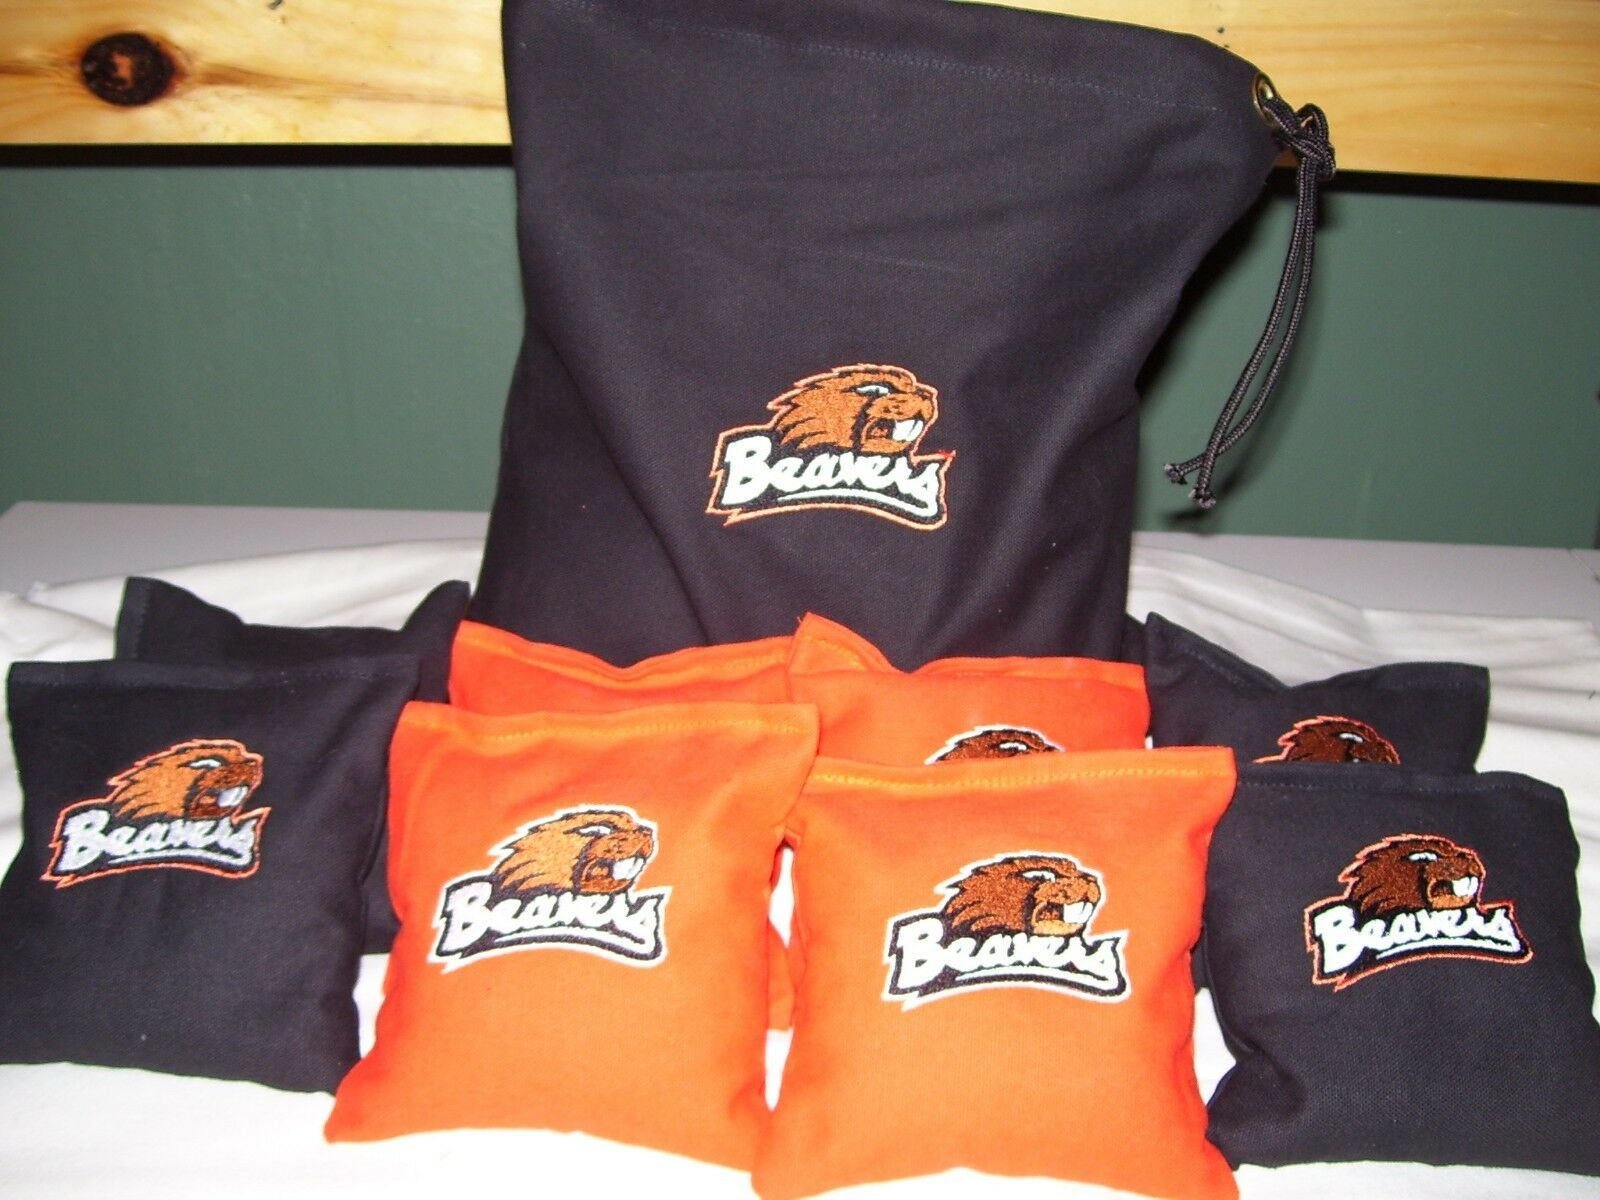 Oregon Beavers Embroidered Cornhole Corn Hole Bags With Storage  Bag  brand outlet